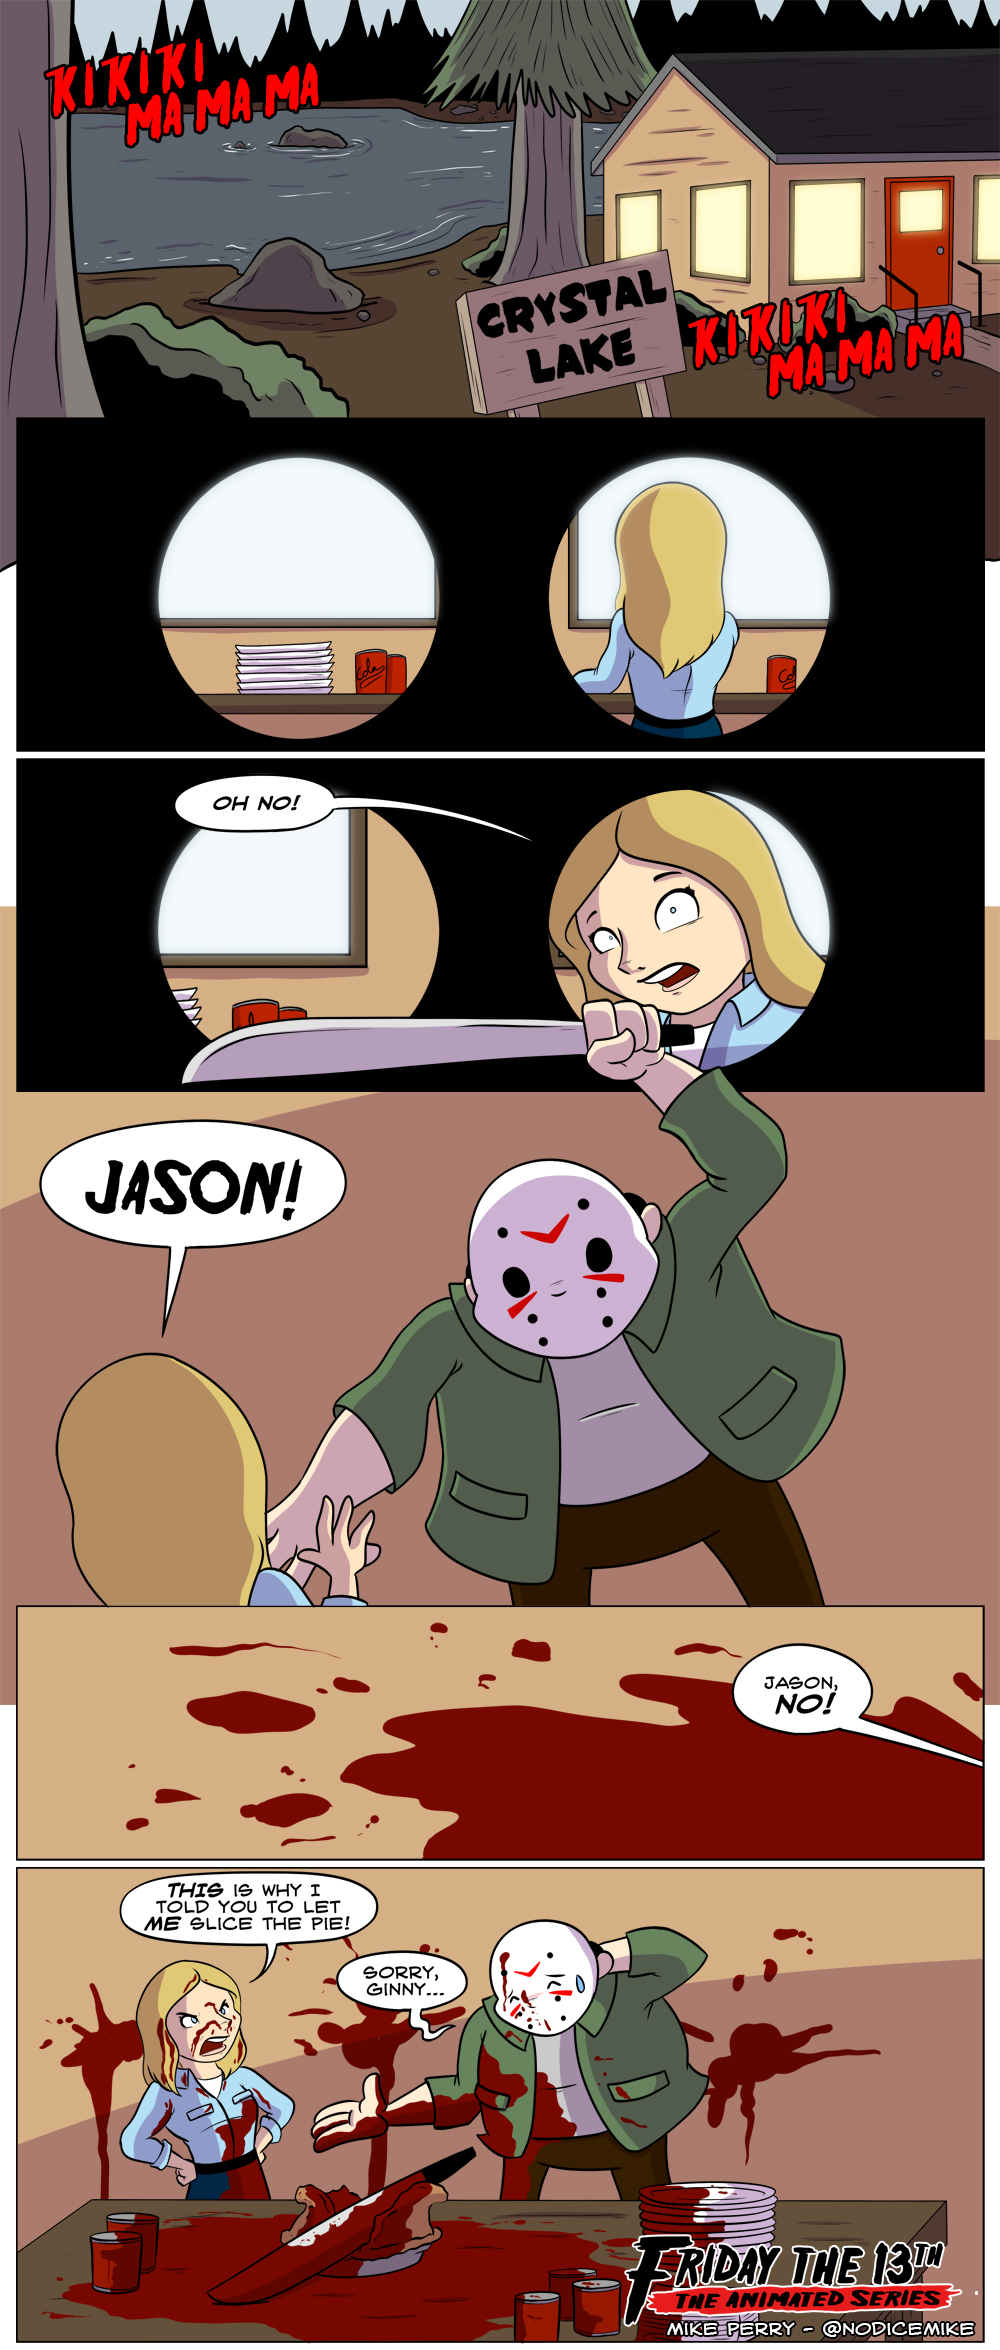 Friday the 13th - The Animated Series - 1 by NoDiceMike